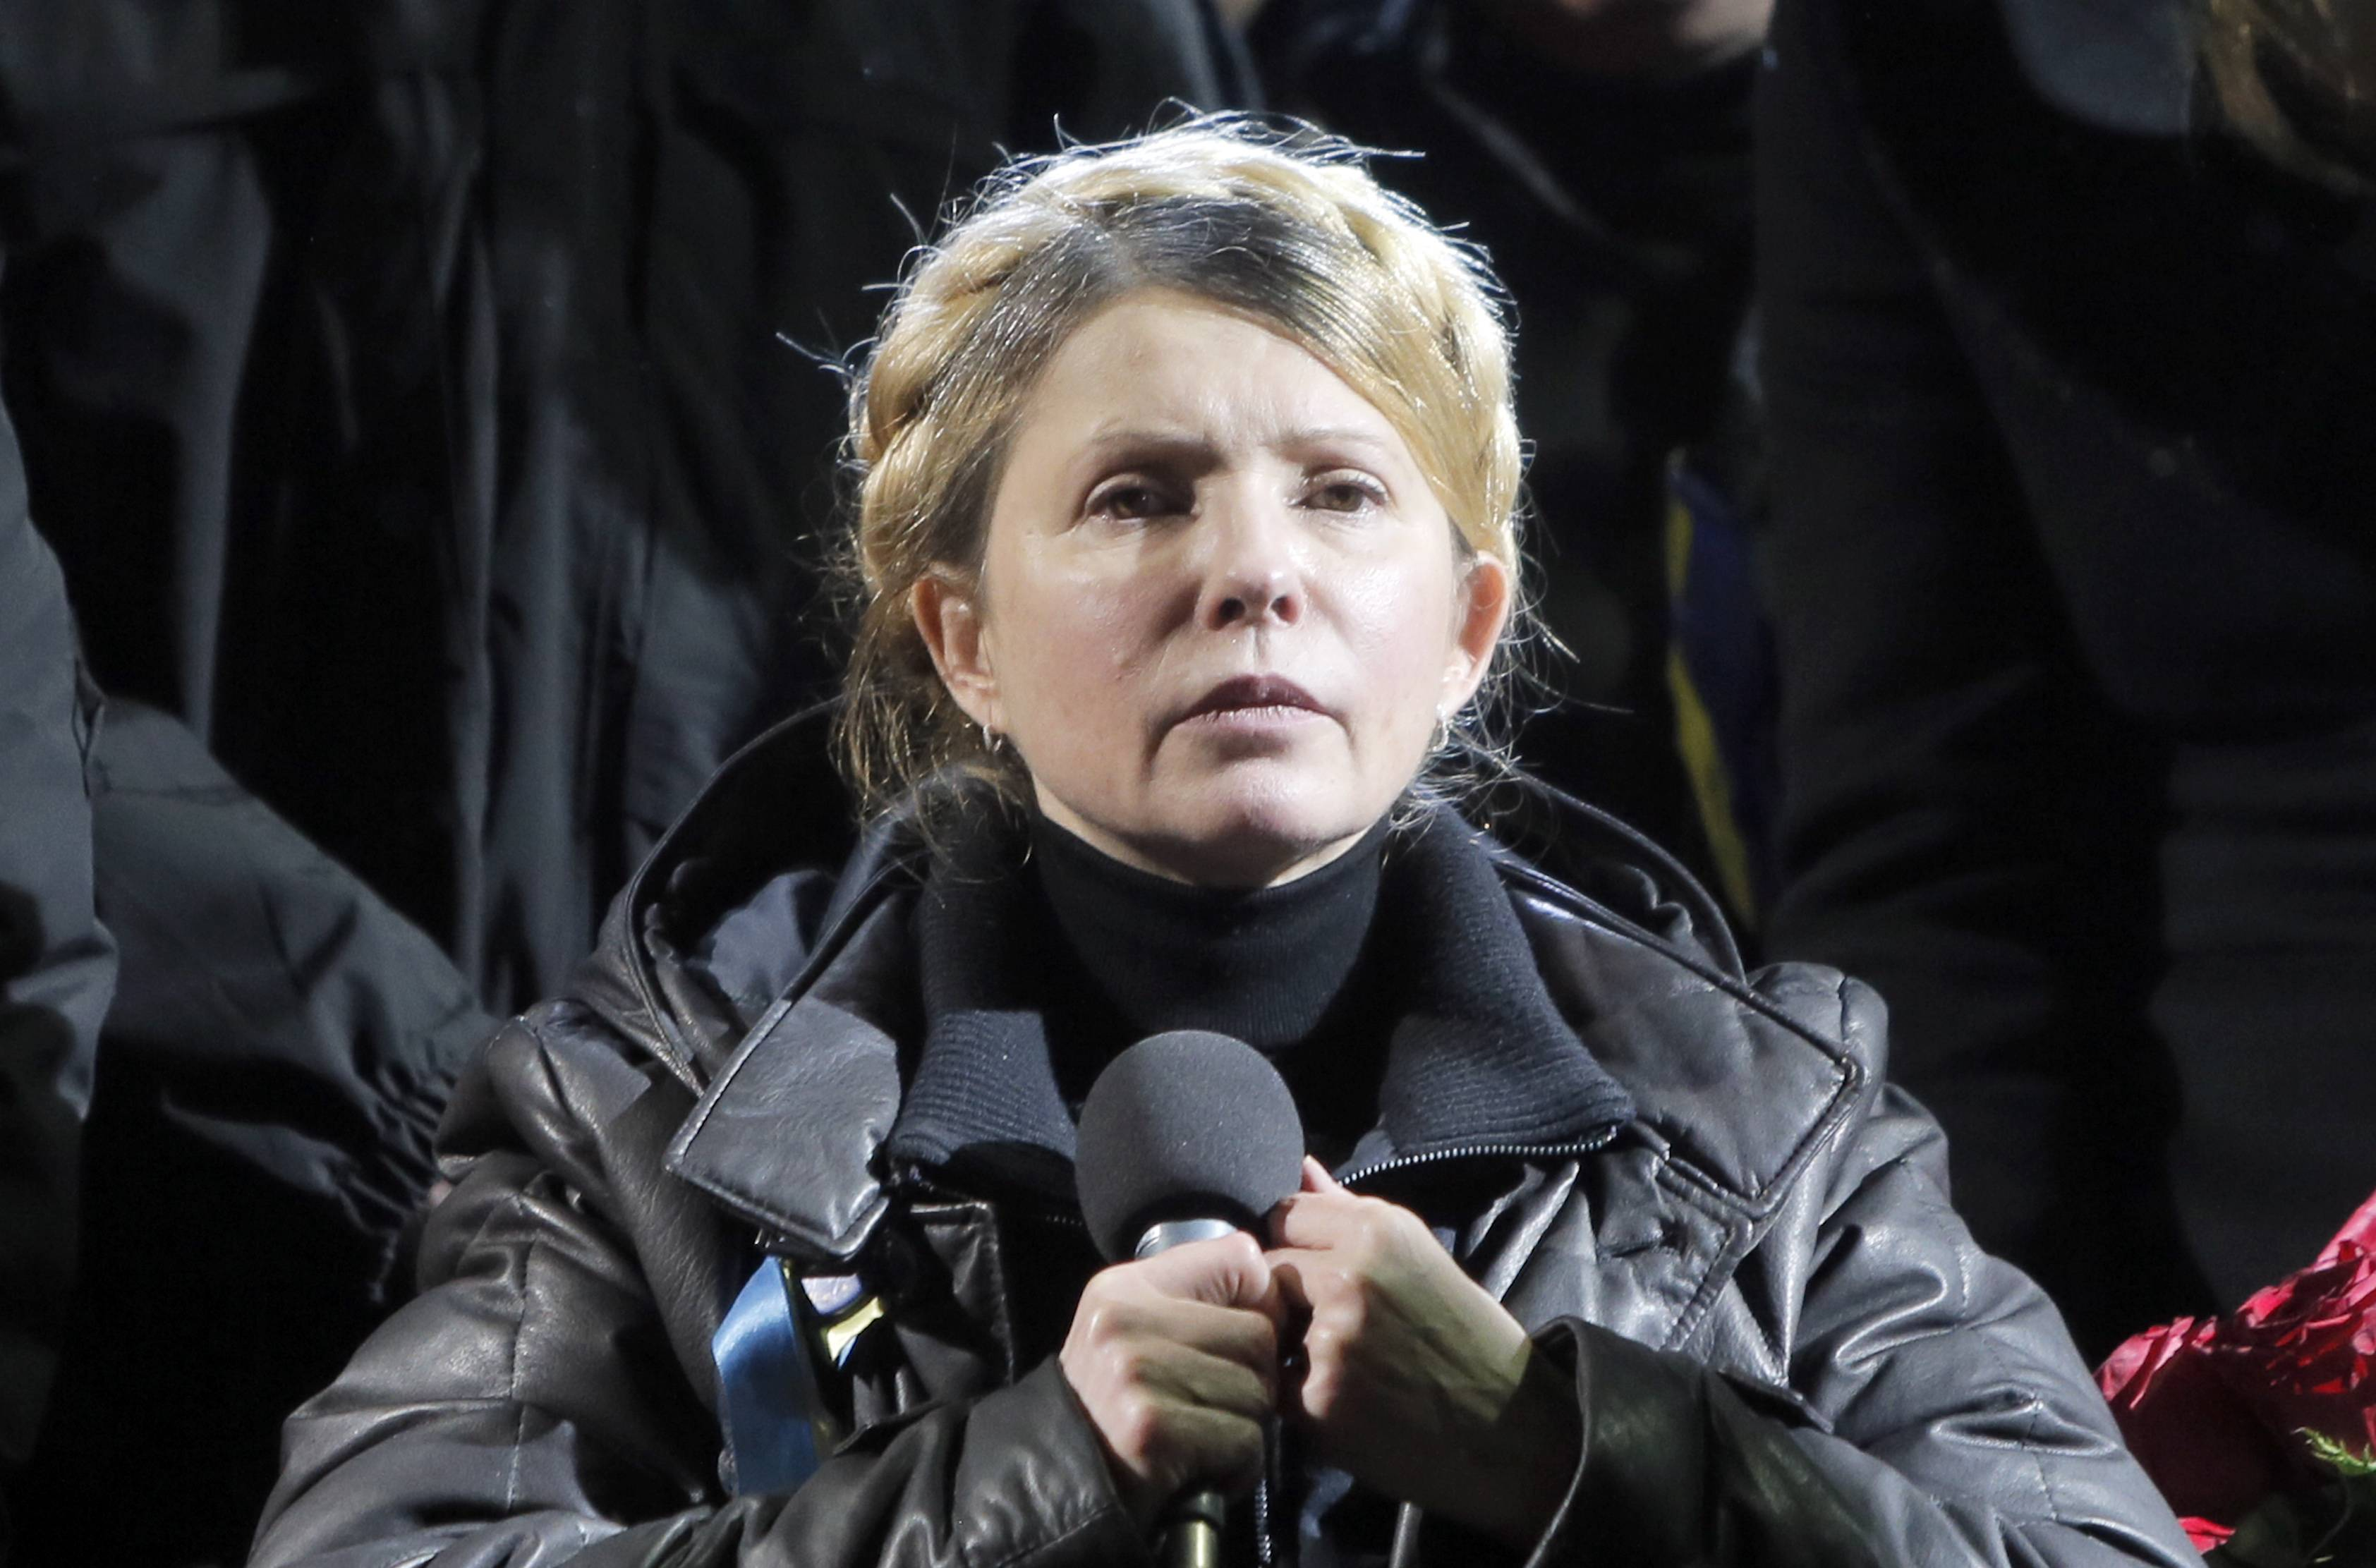 Former Ukrainian prime minister Yulia Tymoshenko addresses the crowd Saturday, hours after being released from prison.